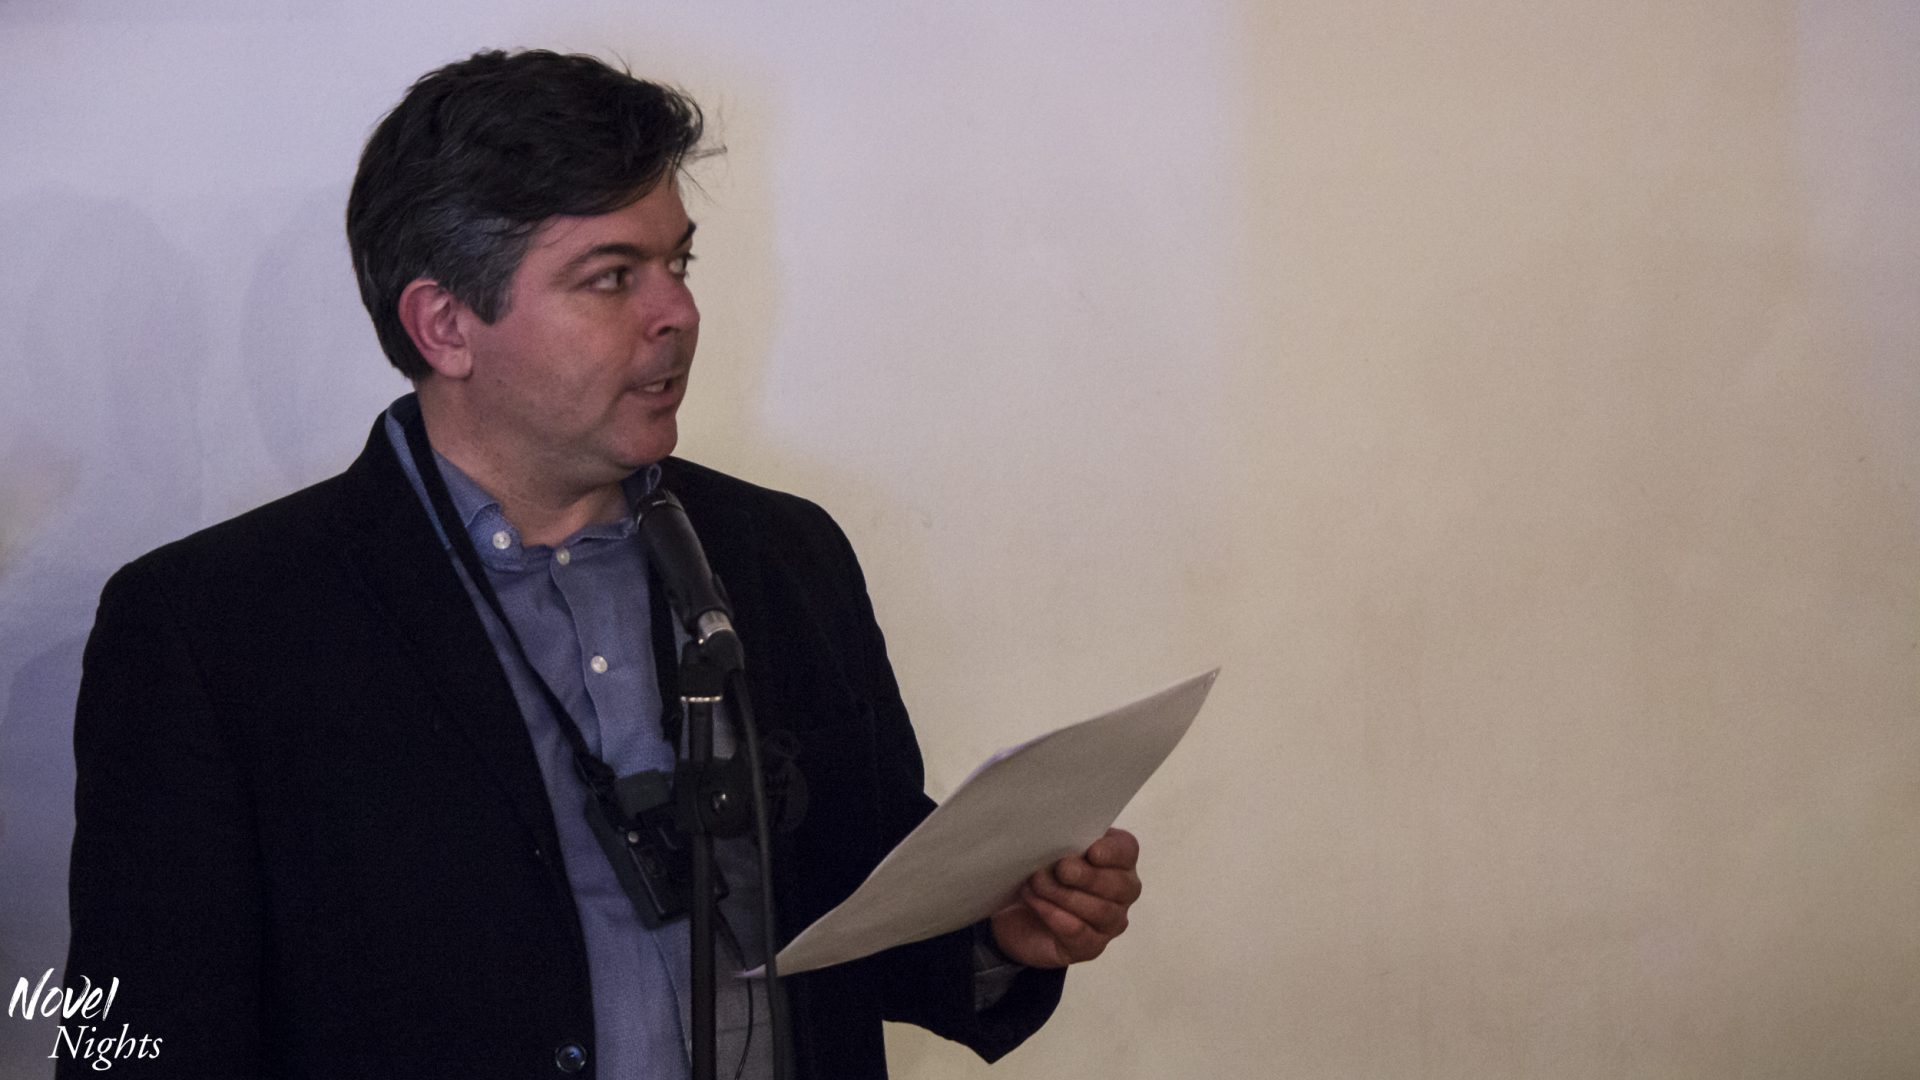 Pitching to an agent at CrimeFest by Merlin Goldman